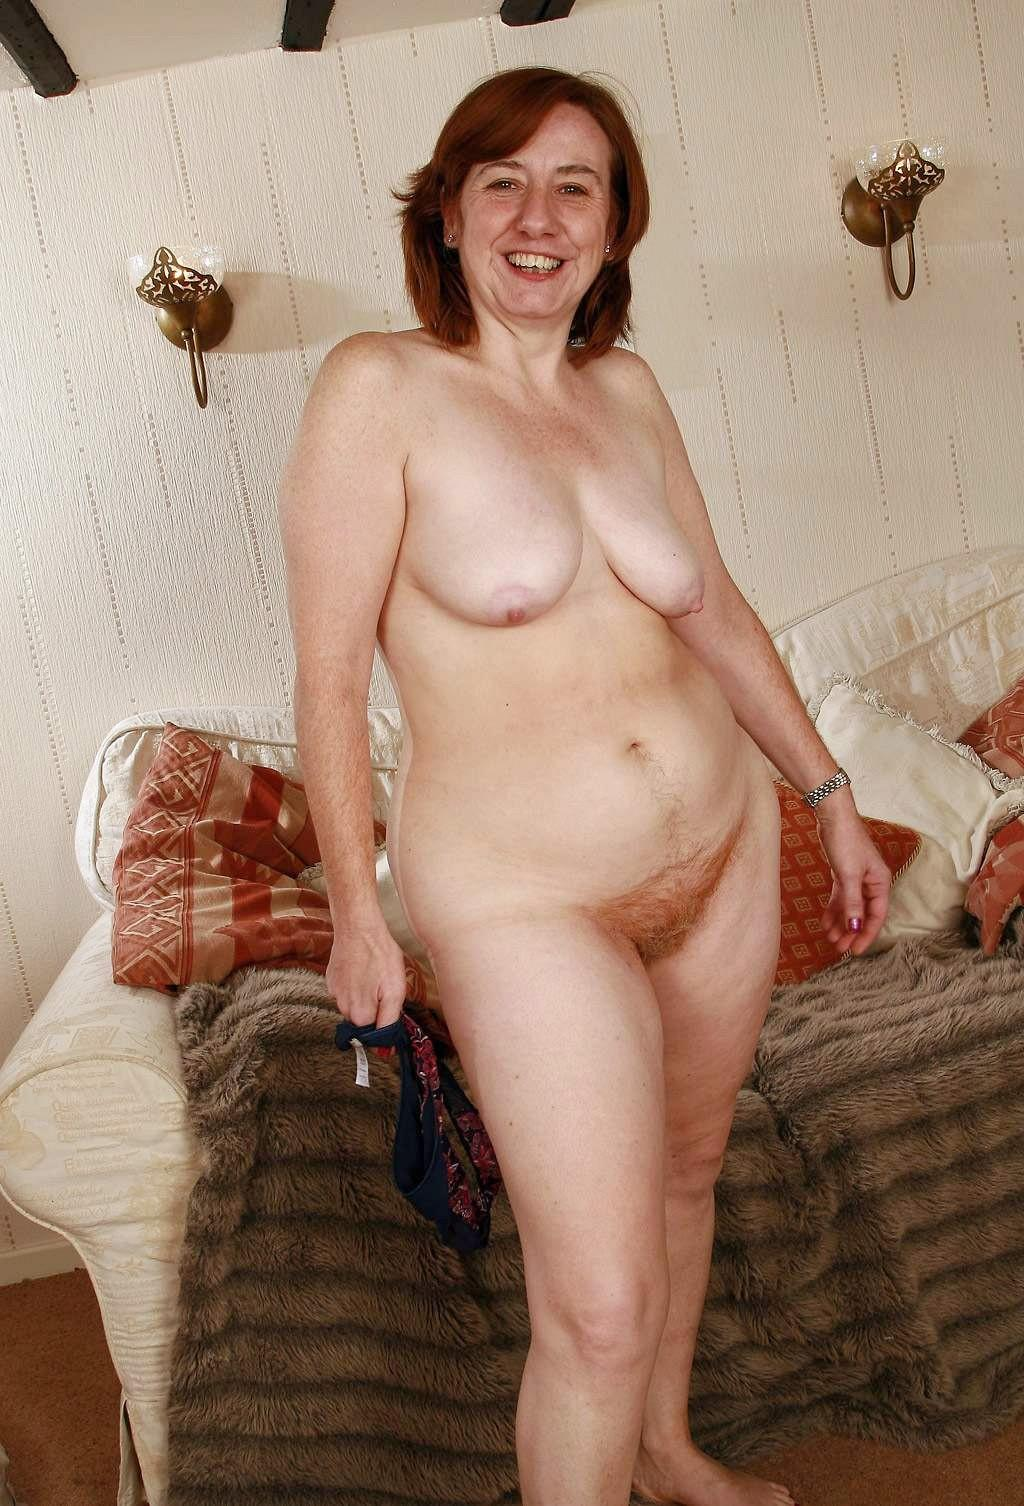 tits hairy Mature pussy saggy big